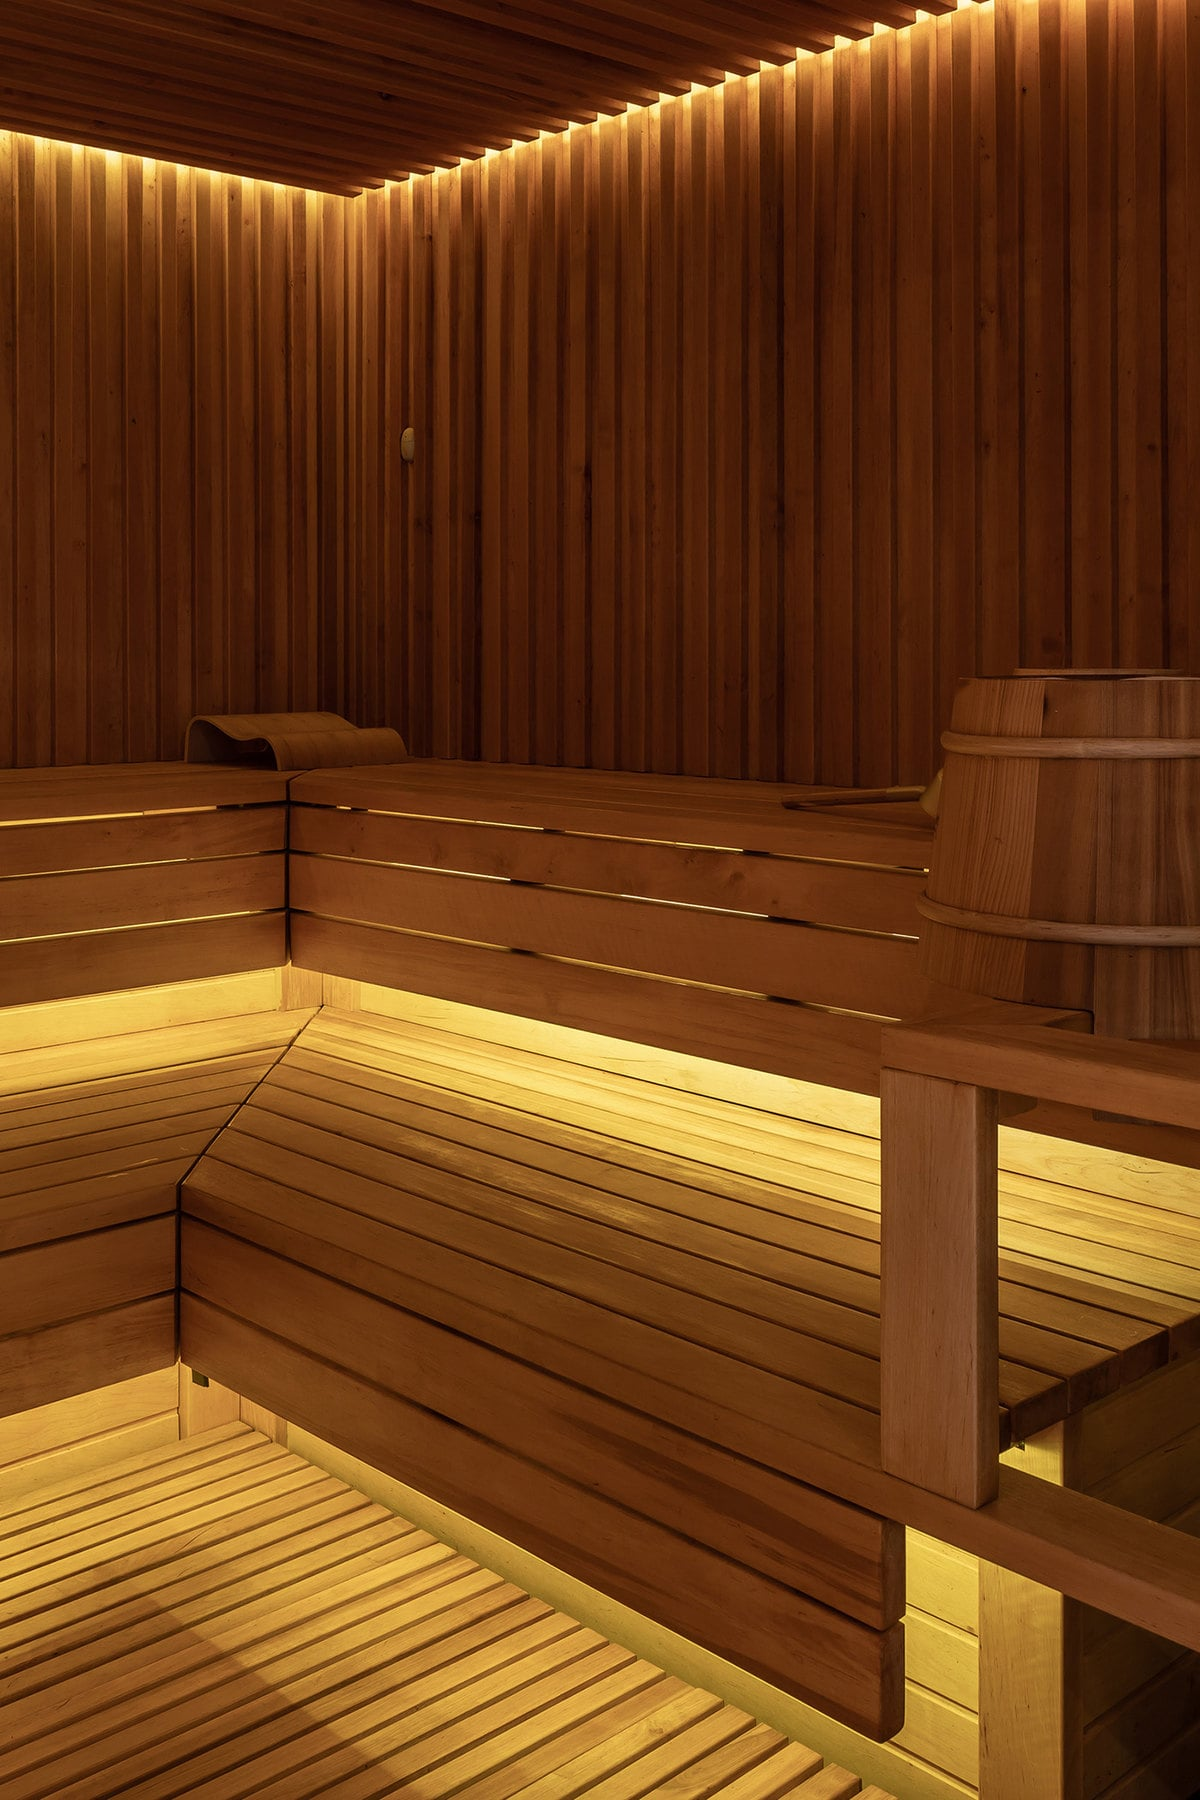 There is also a steam room with built-in wooden benches that blend perfectly with the wooden walls and flooring. This built-in bench has a lovely design on its lighting making it glow at the edges to help when the room is filled with steam.